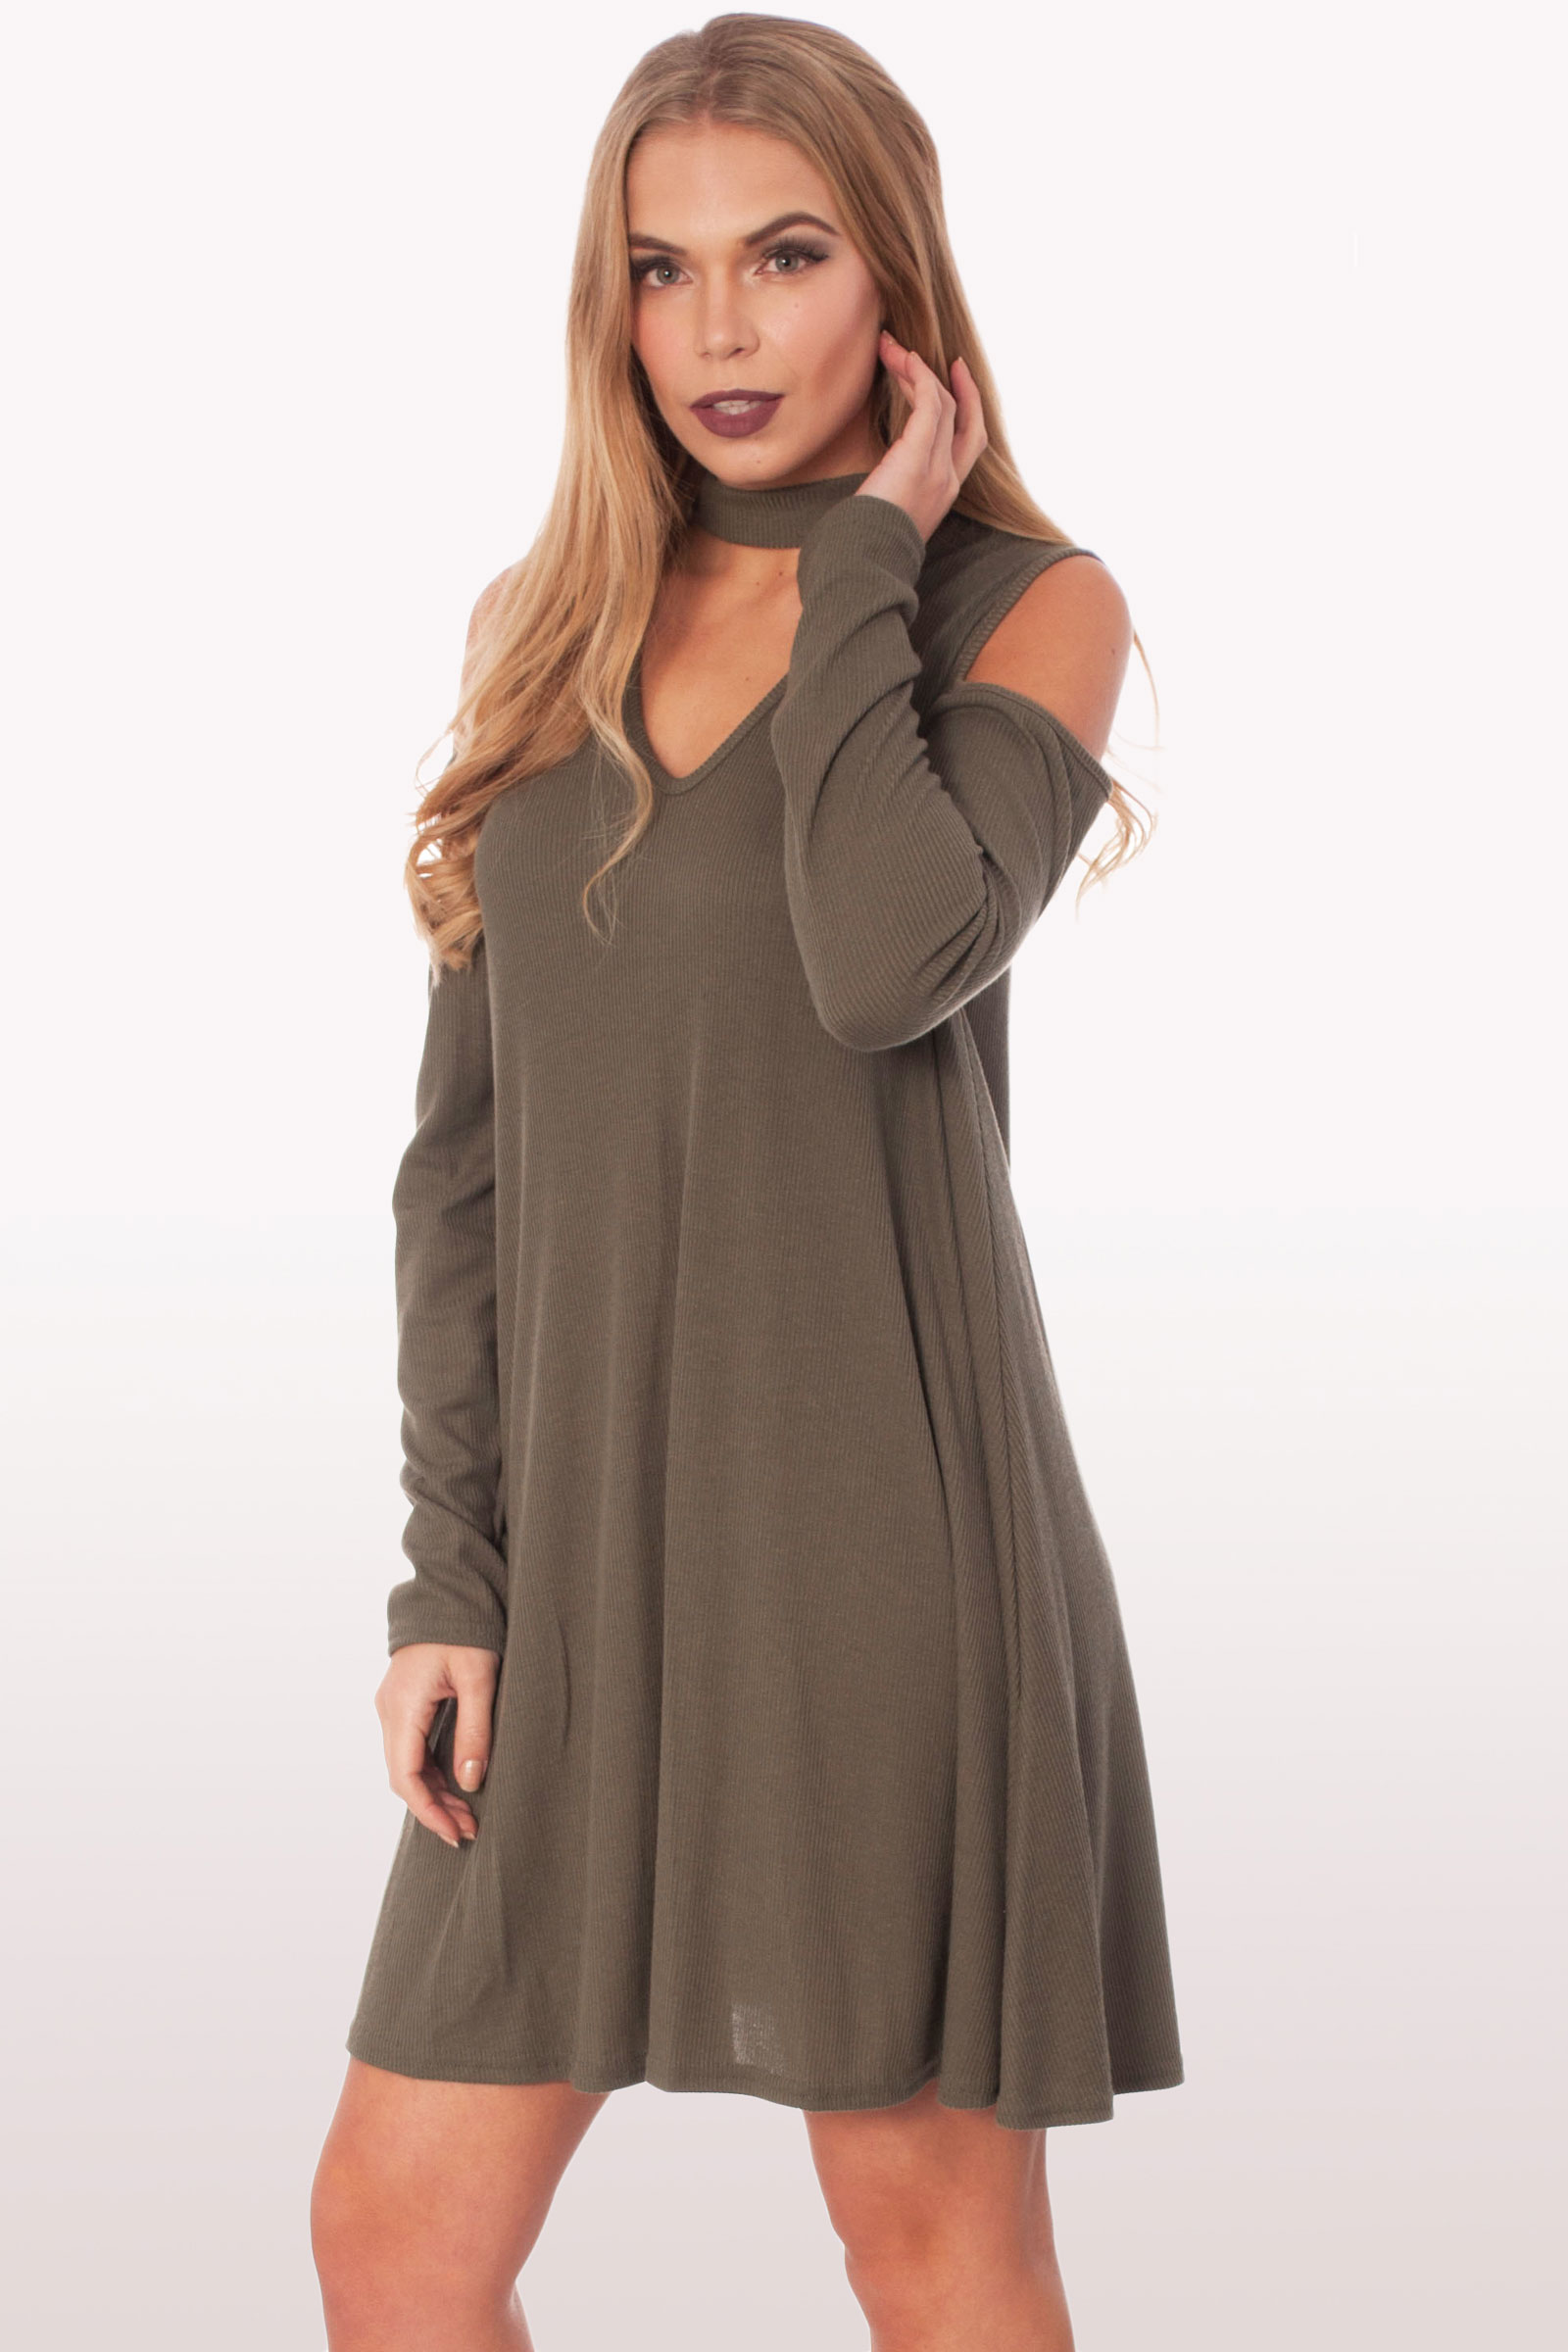 a8a8c5a0e76c Khaki Choker Rib Cold Shoulder Swing Dress